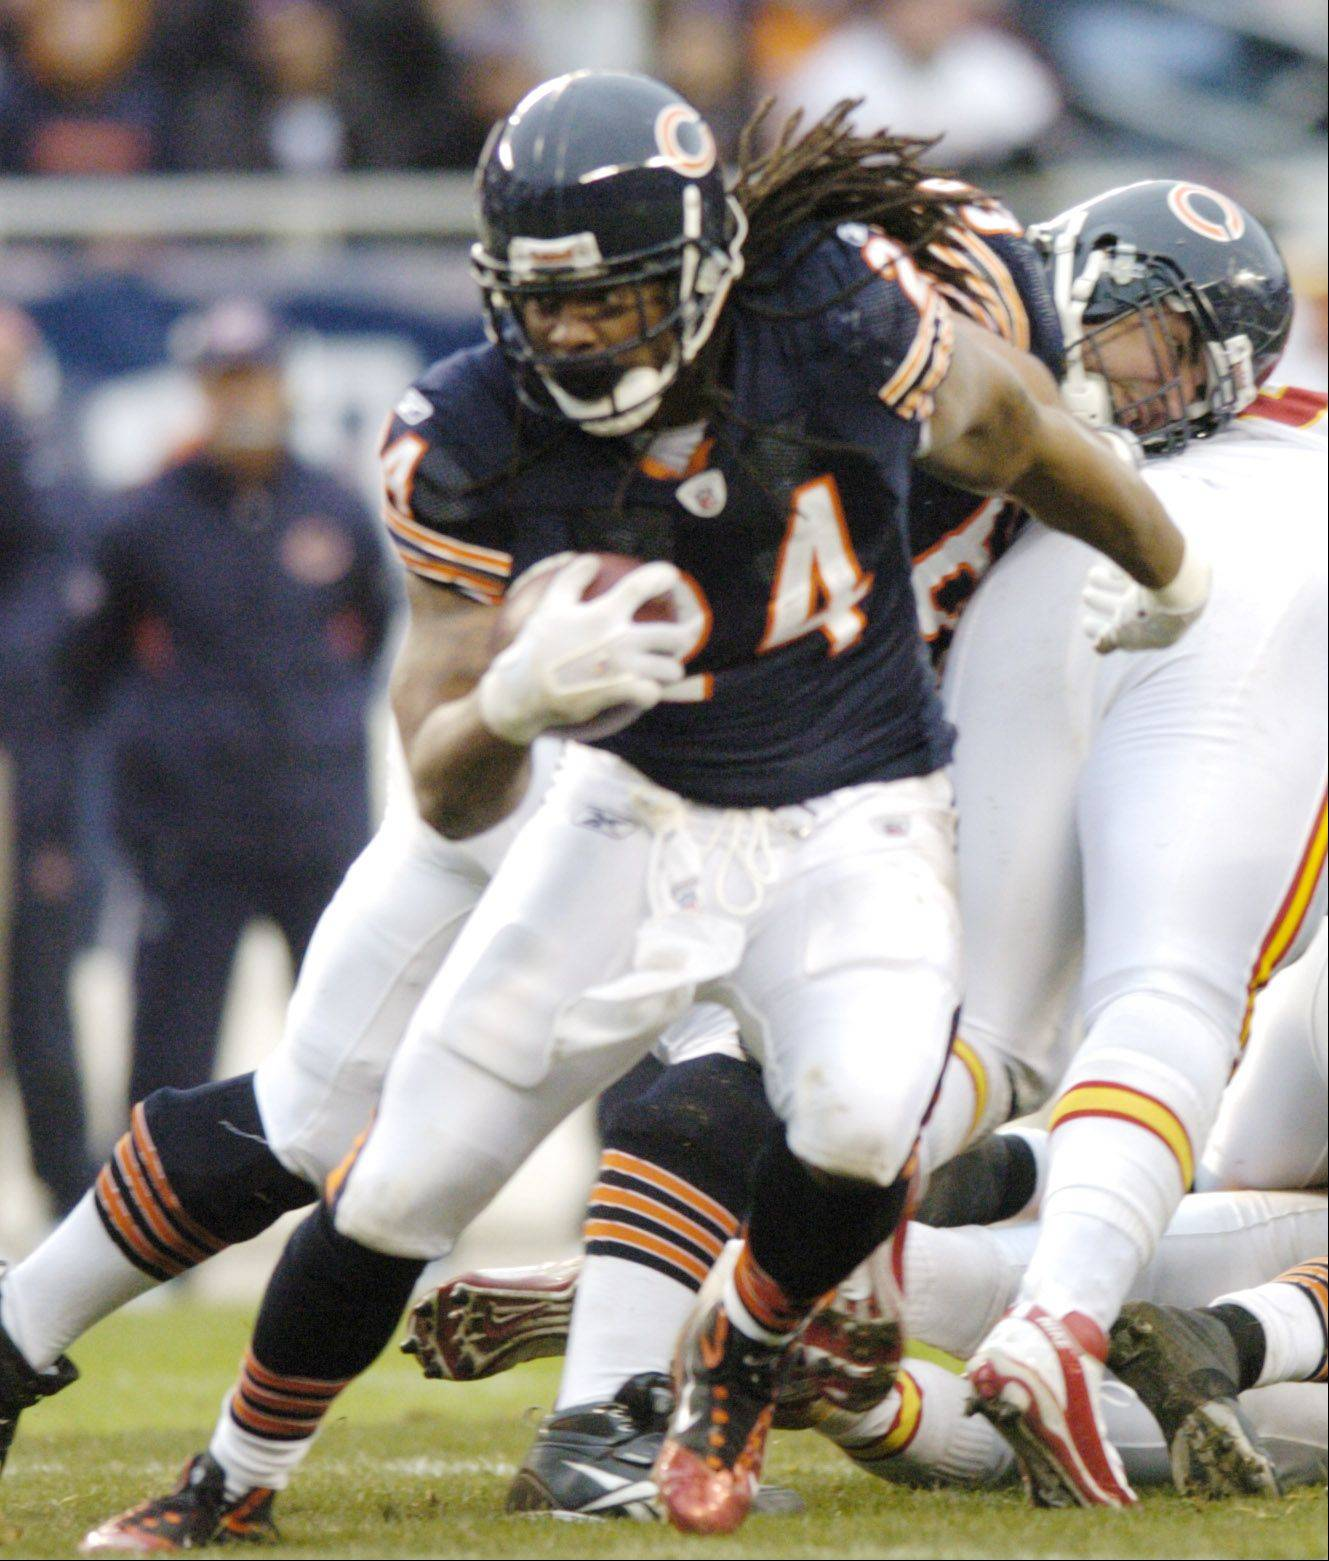 After seven NFL seasons, including one with the Chicago Bears, running back Marion Barber has decided to retire.